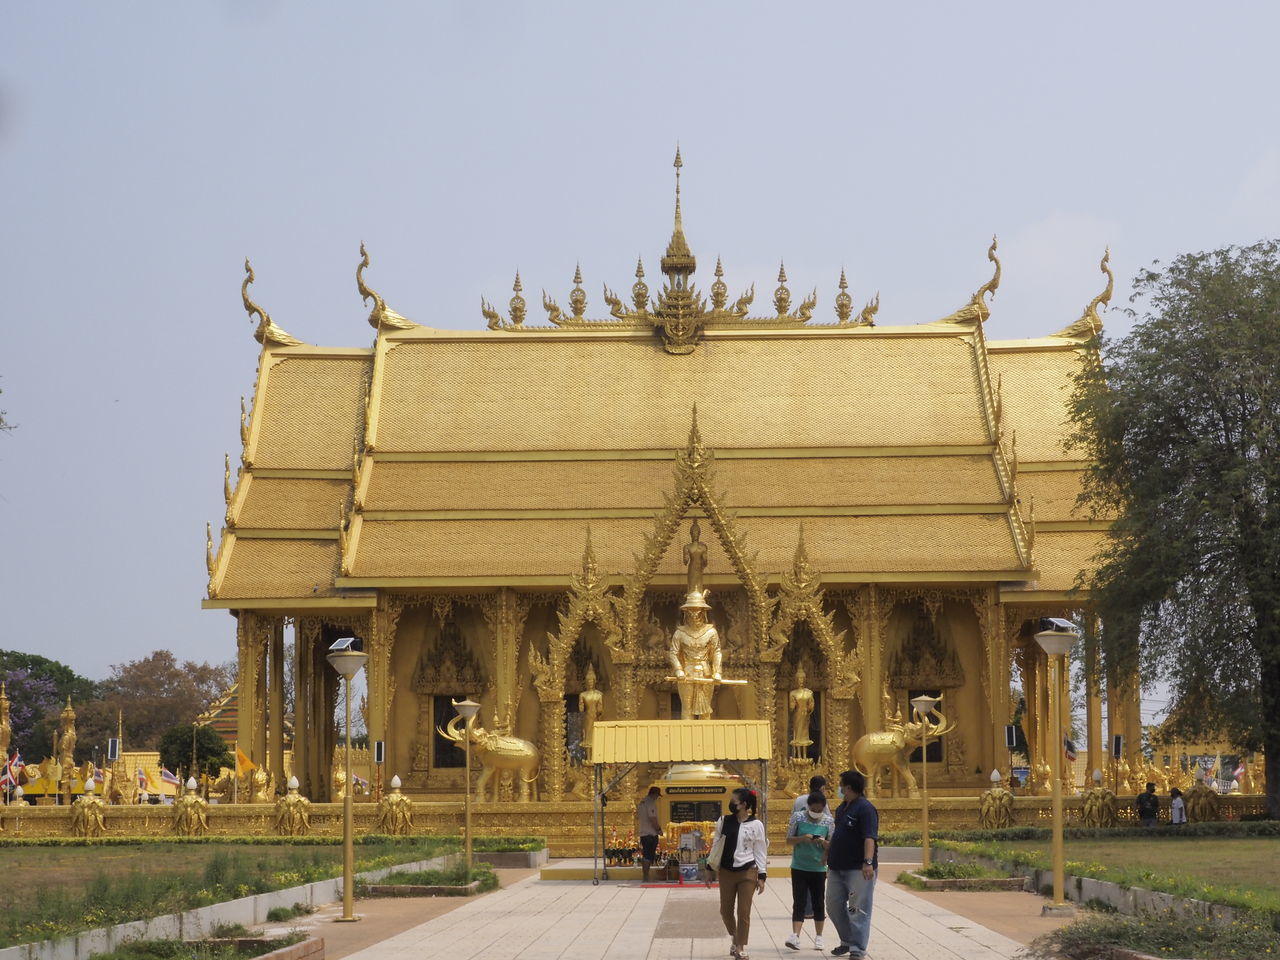 GROUP OF PEOPLE IN FRONT OF TEMPLE